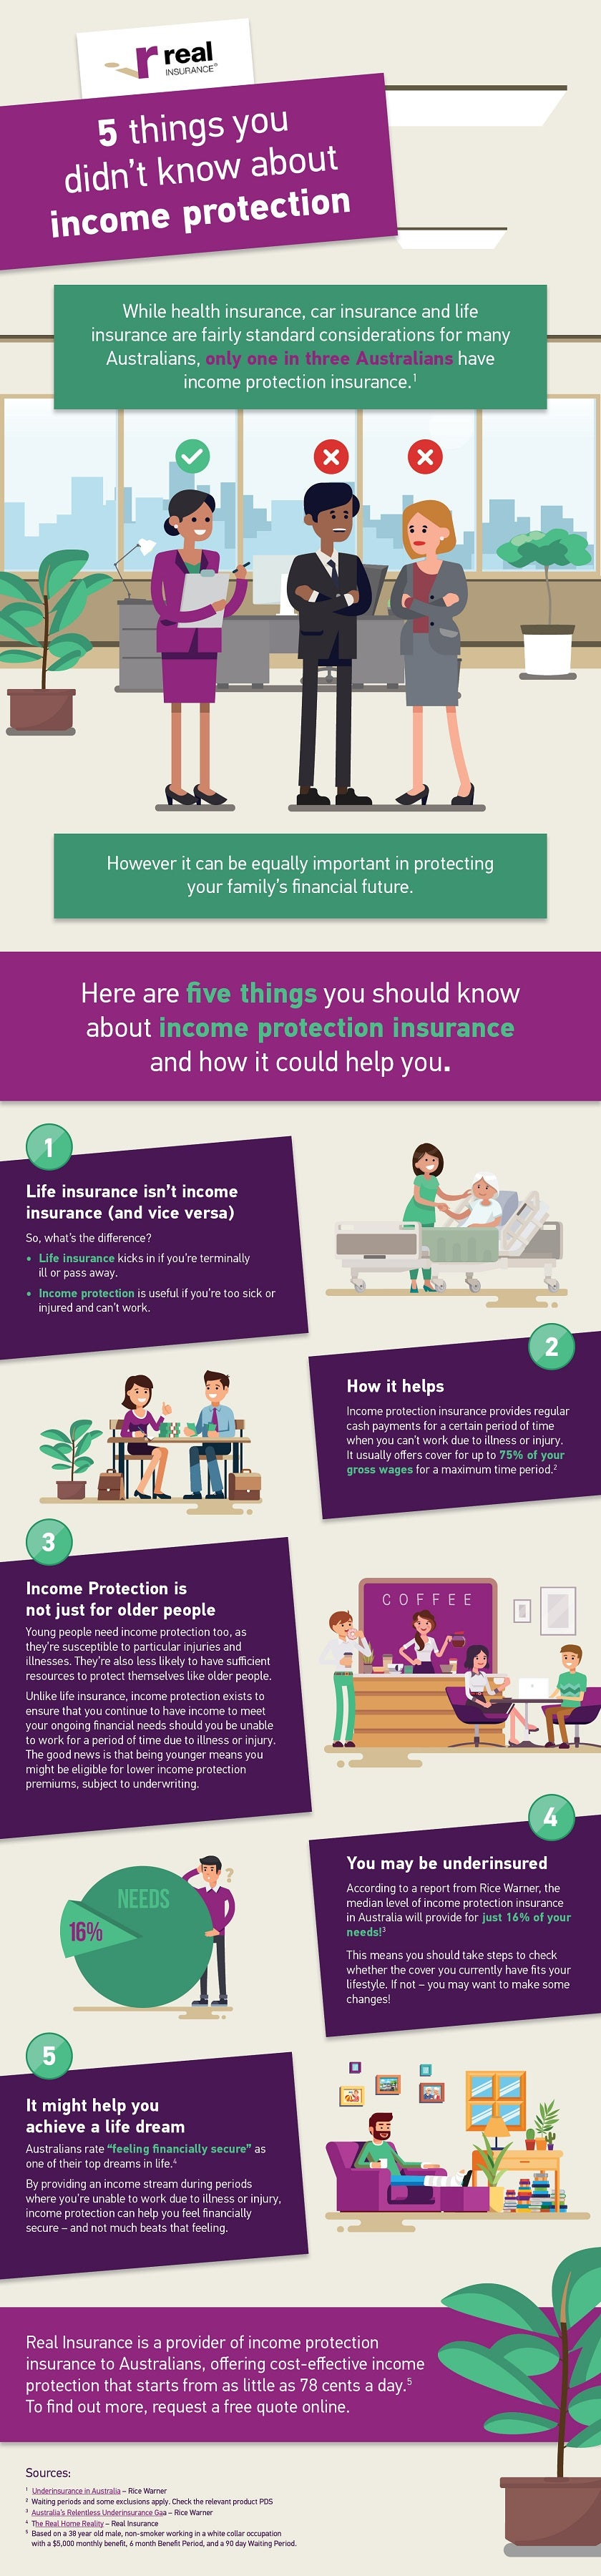 income protection myths infrographic